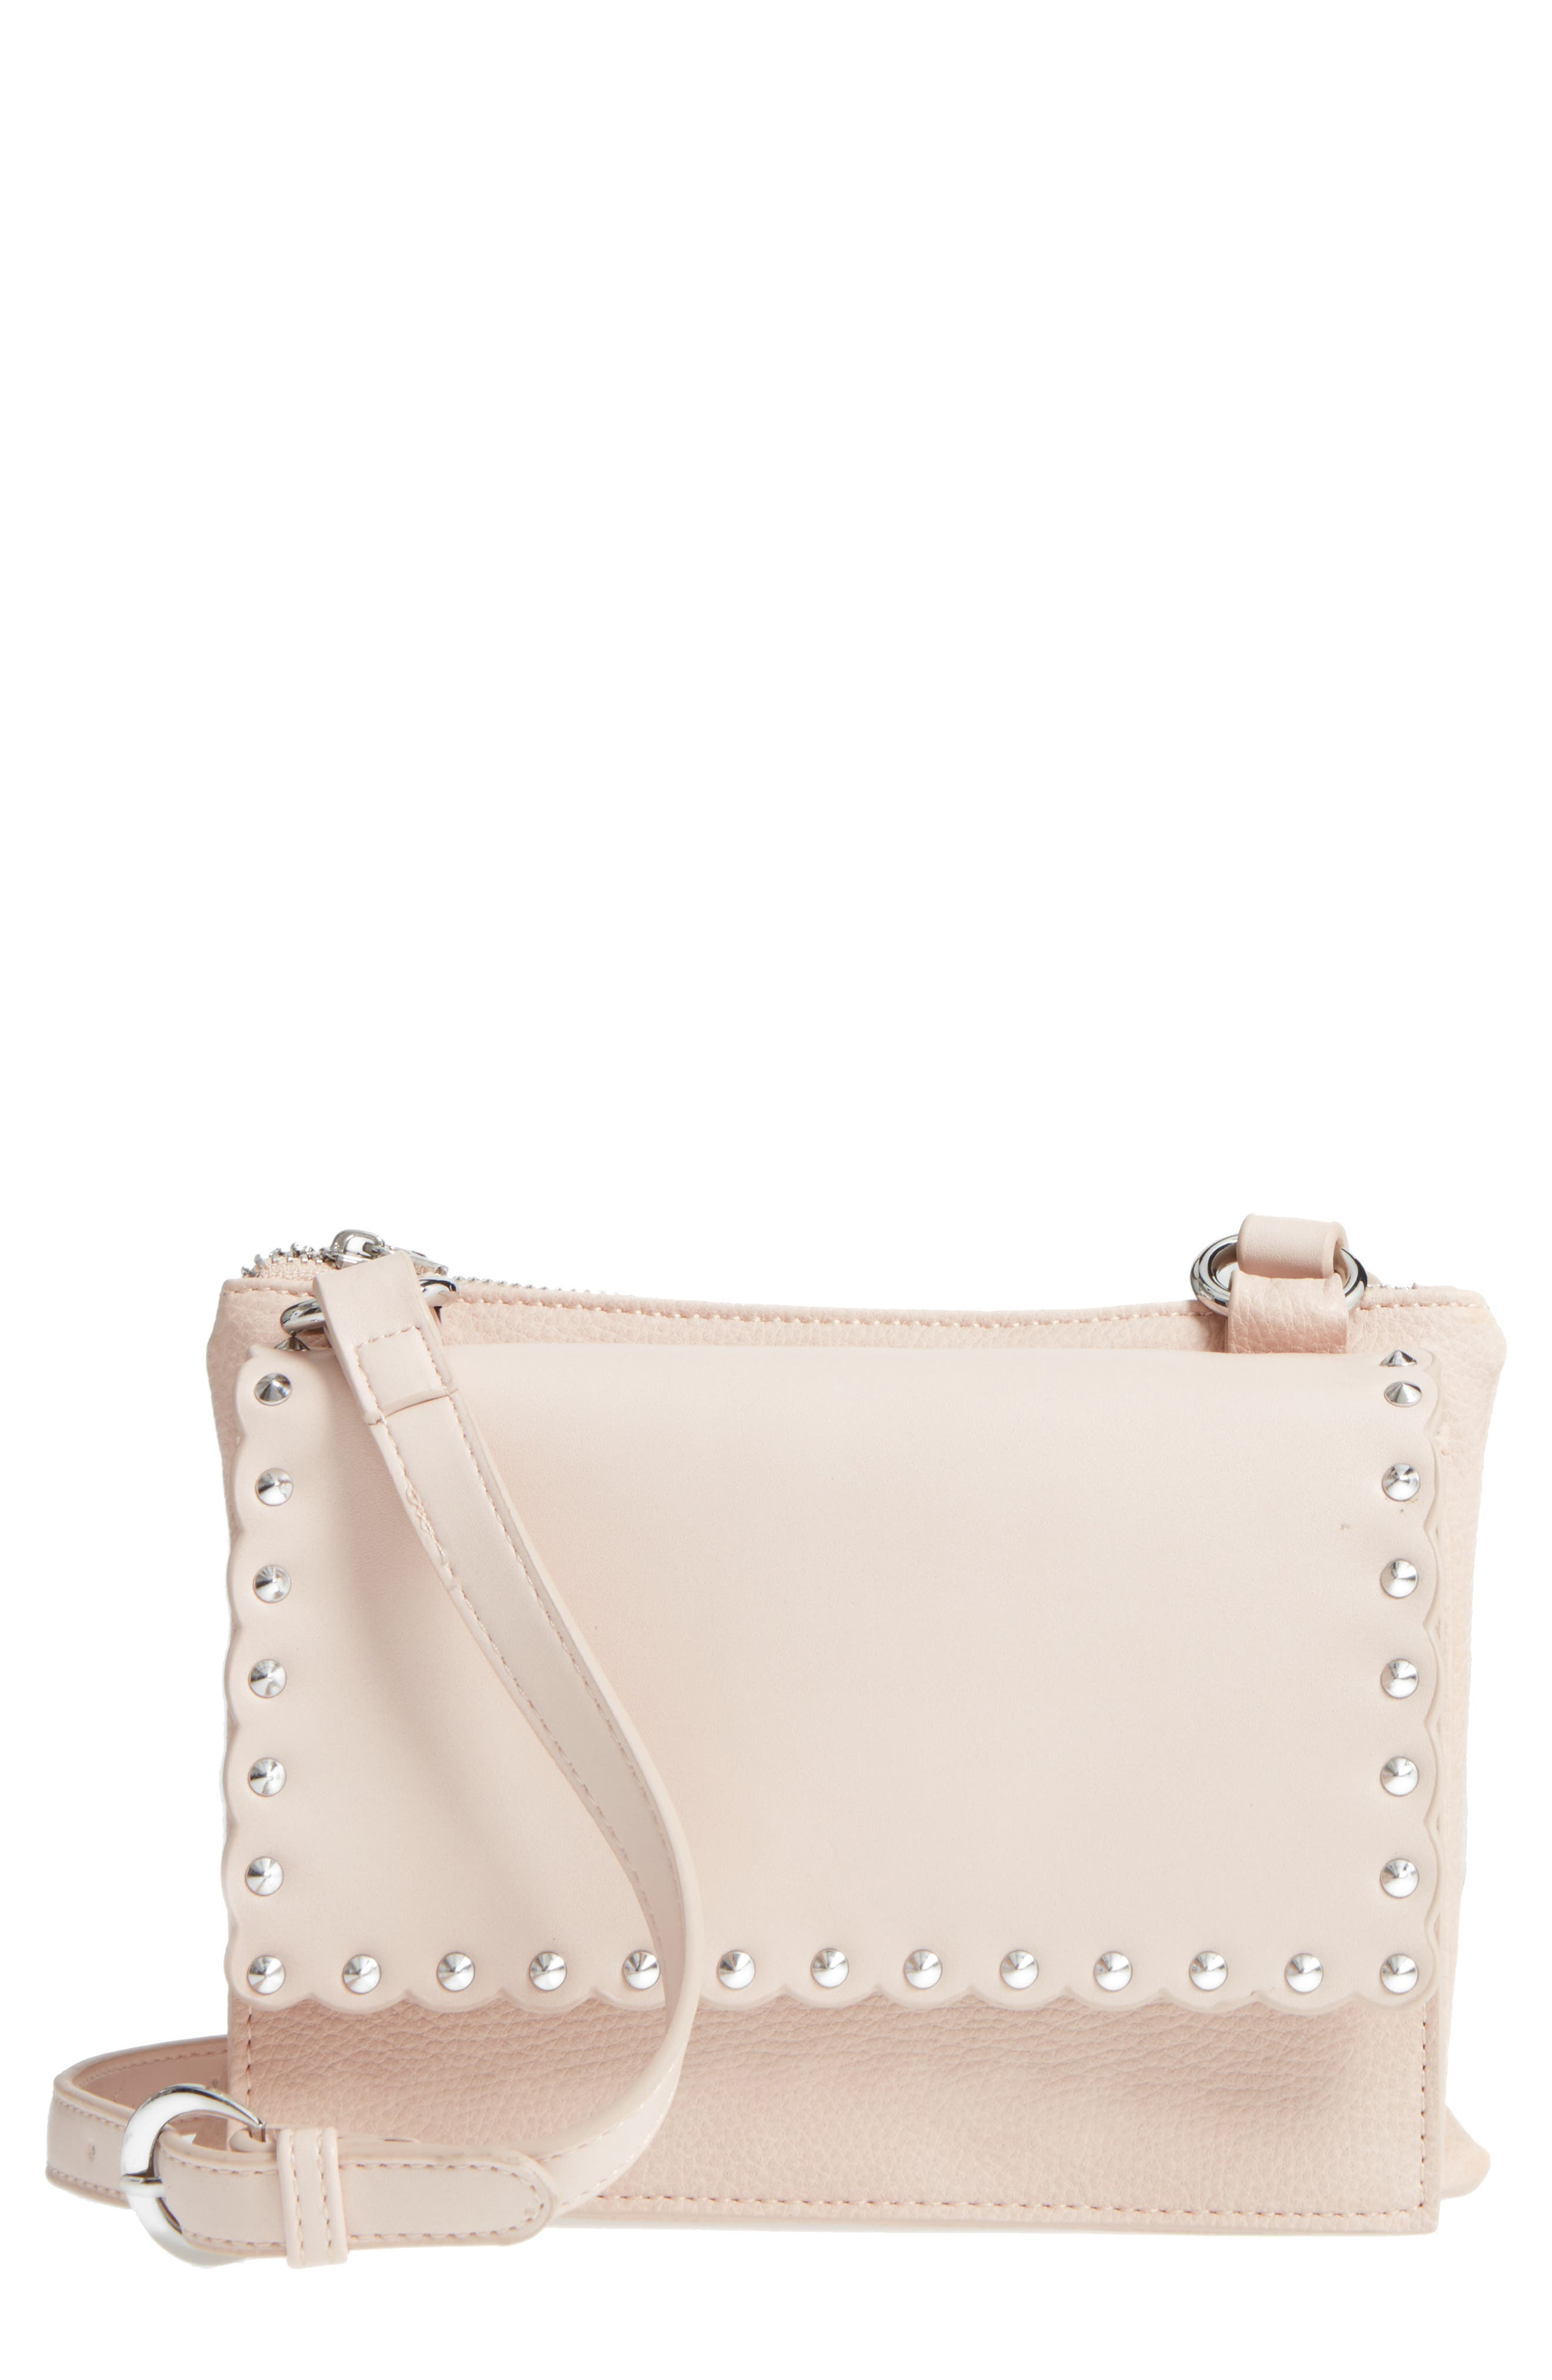 Chelsea28 Harlow Faux Leather Crossbody Bag